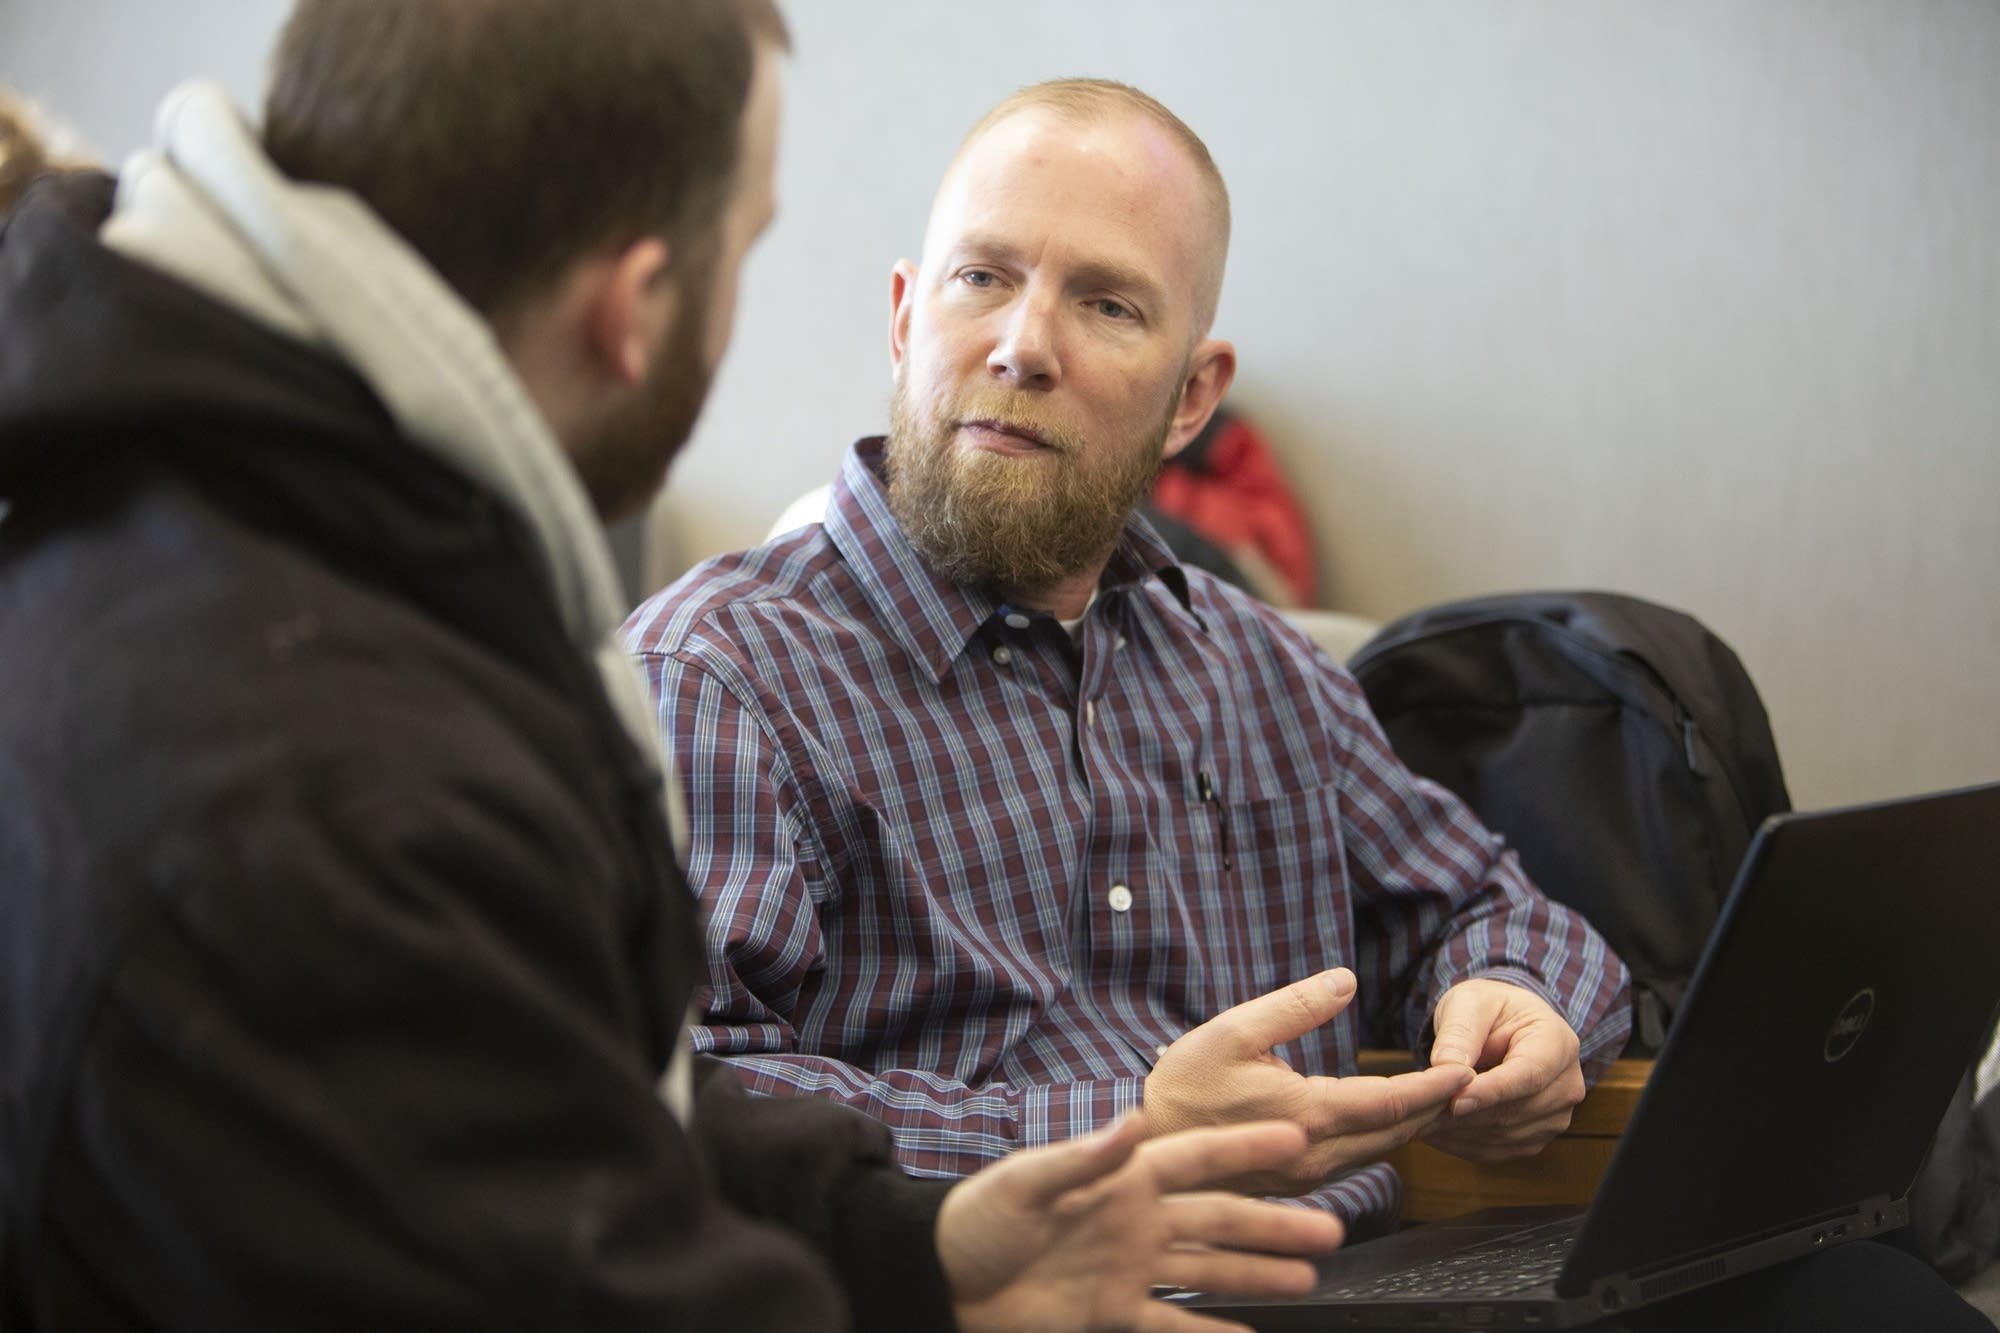 Certified financial counselor Chad Larimer (right) talks with Josh Stone.